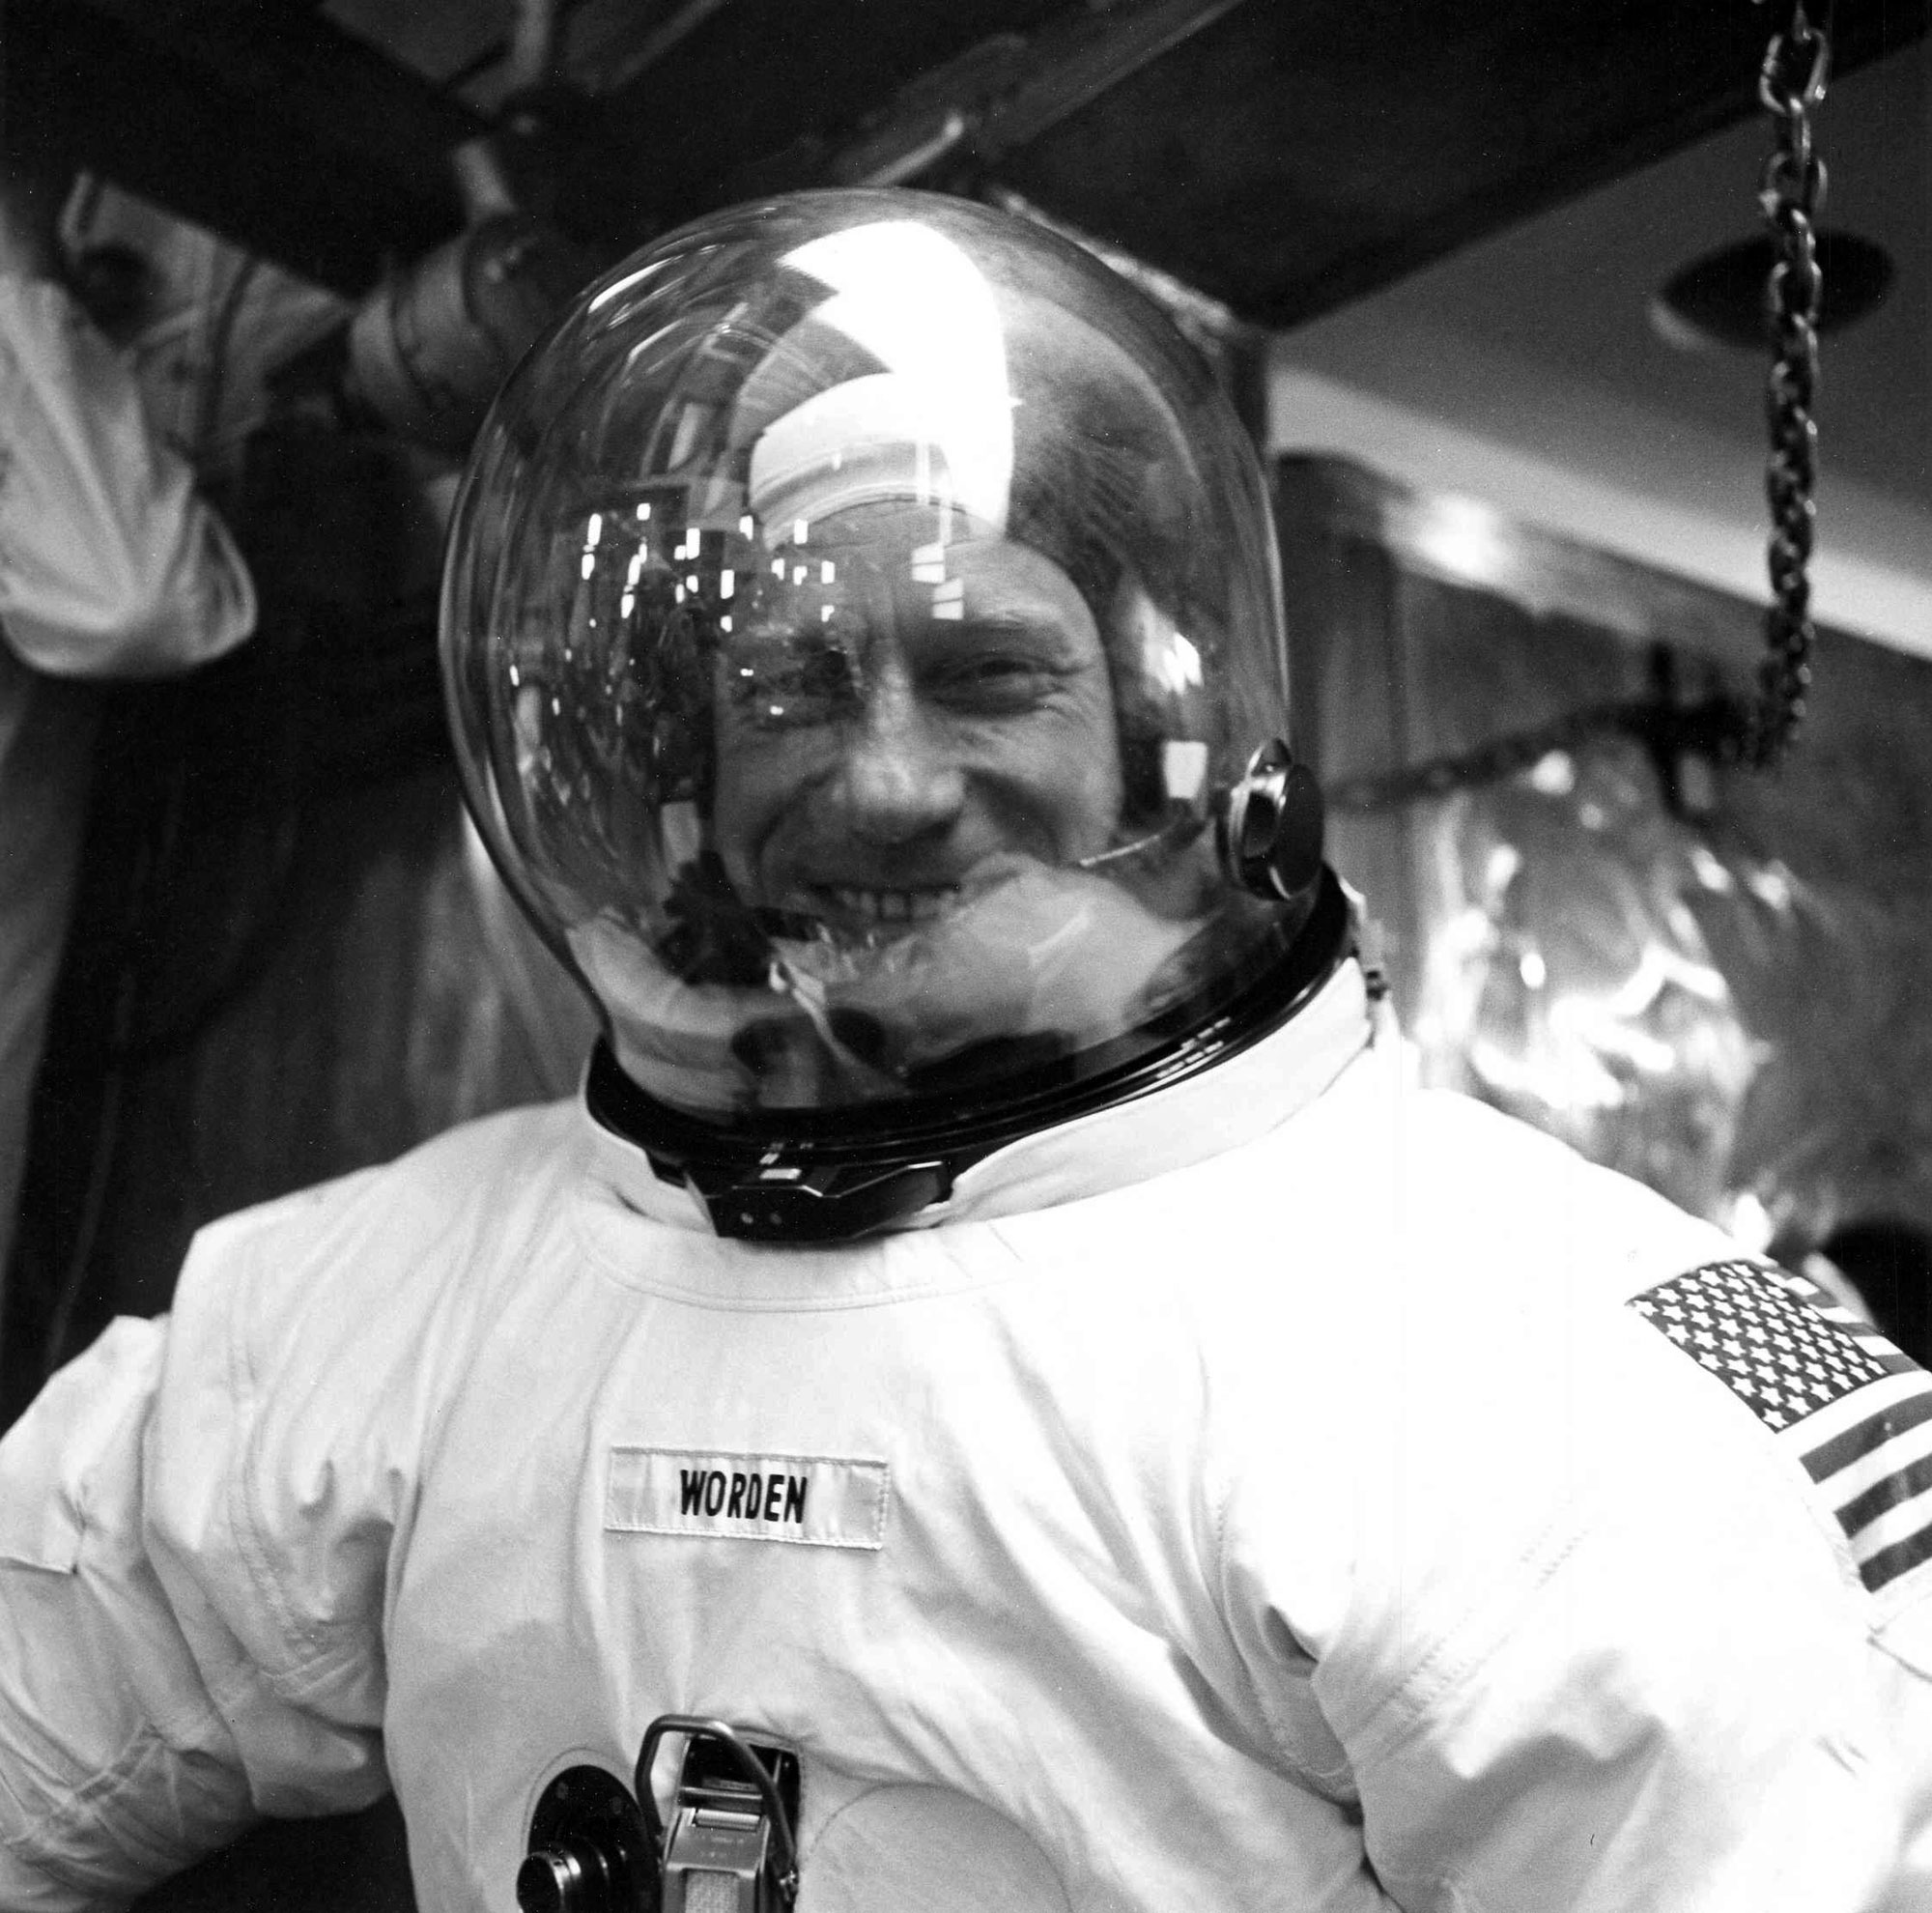 Worden suits up in preparation for a pressure chamber test on April 5, 1971 as part of his training for the Apollo 15 mission. Credit: NASA via Retro Space Images